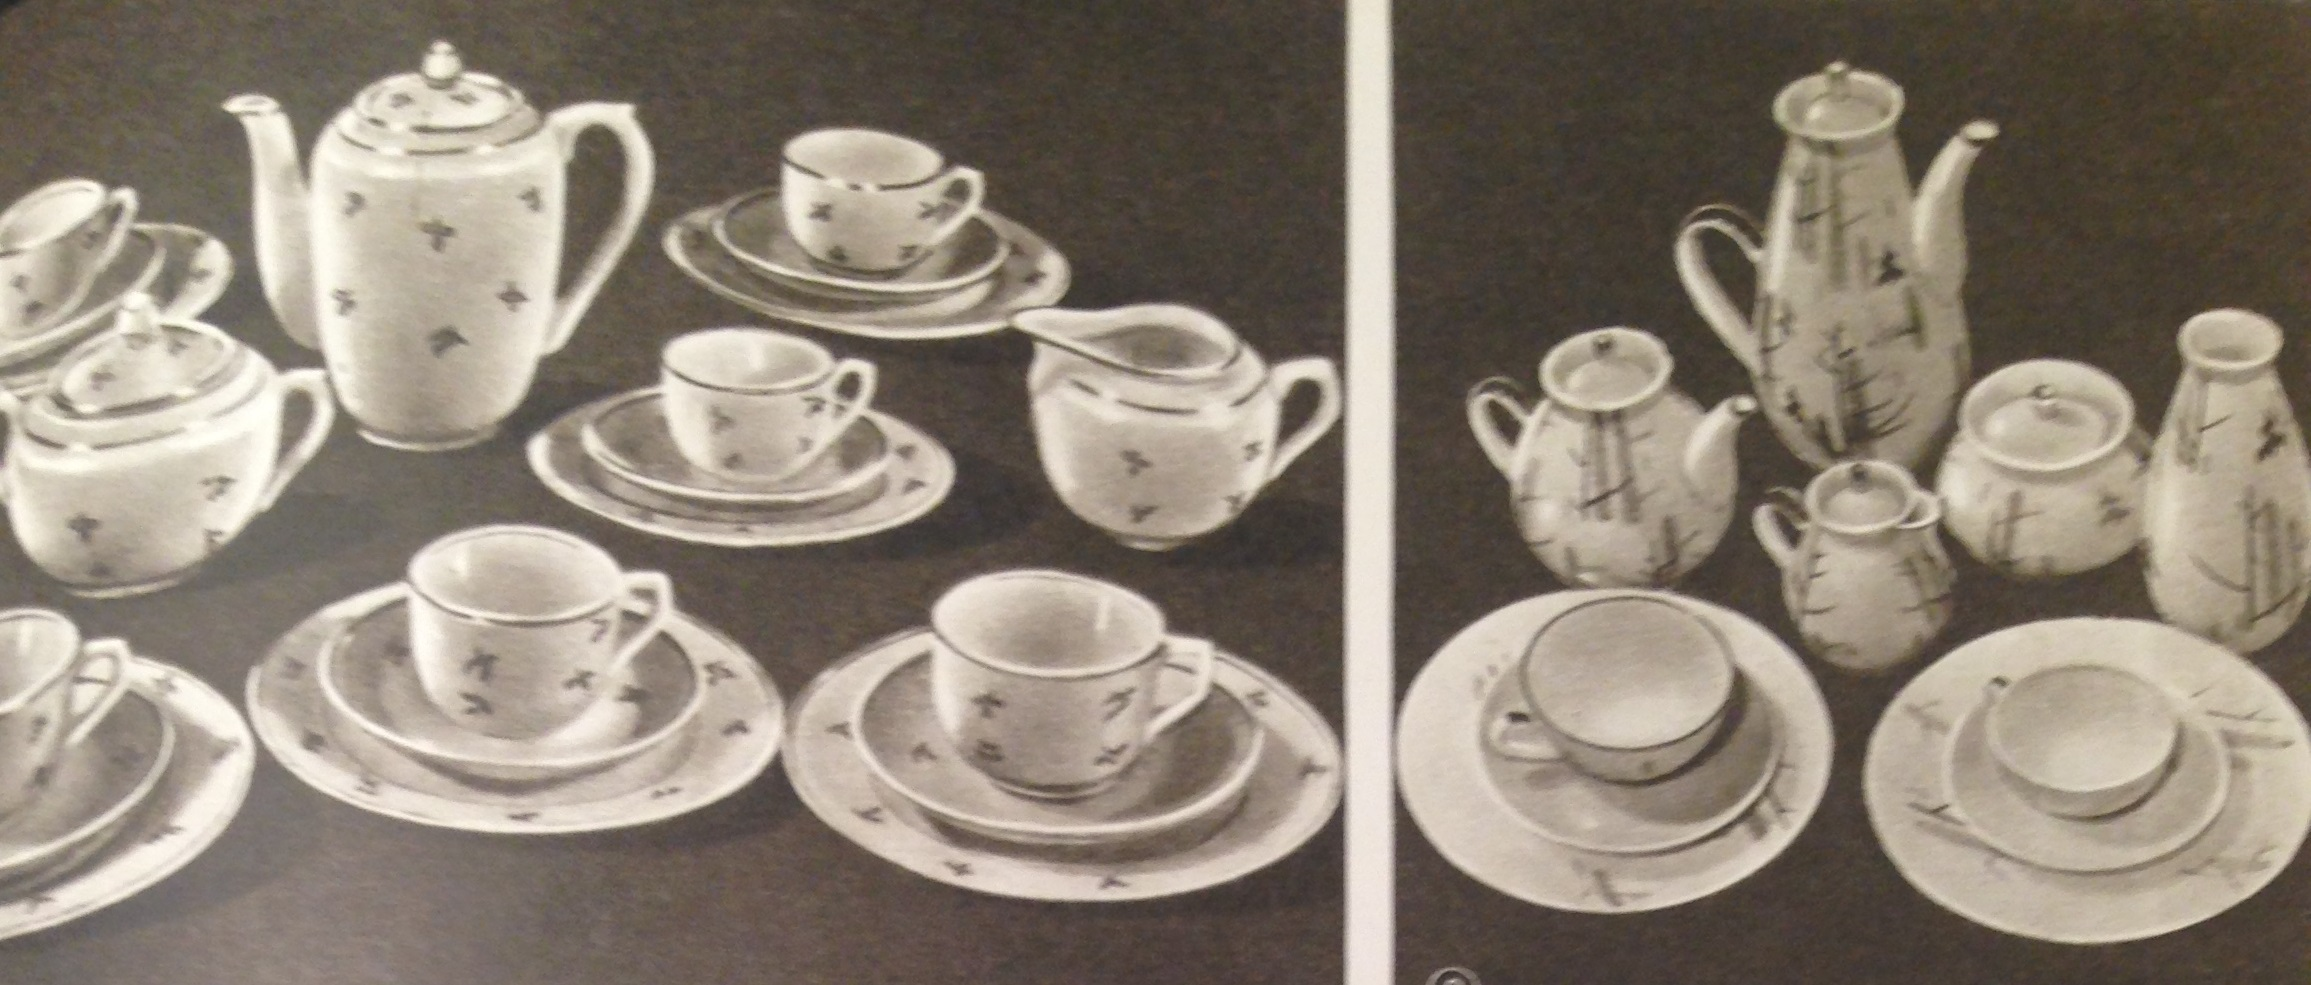 Soviet porcelain picture from Encyclopedia of the household